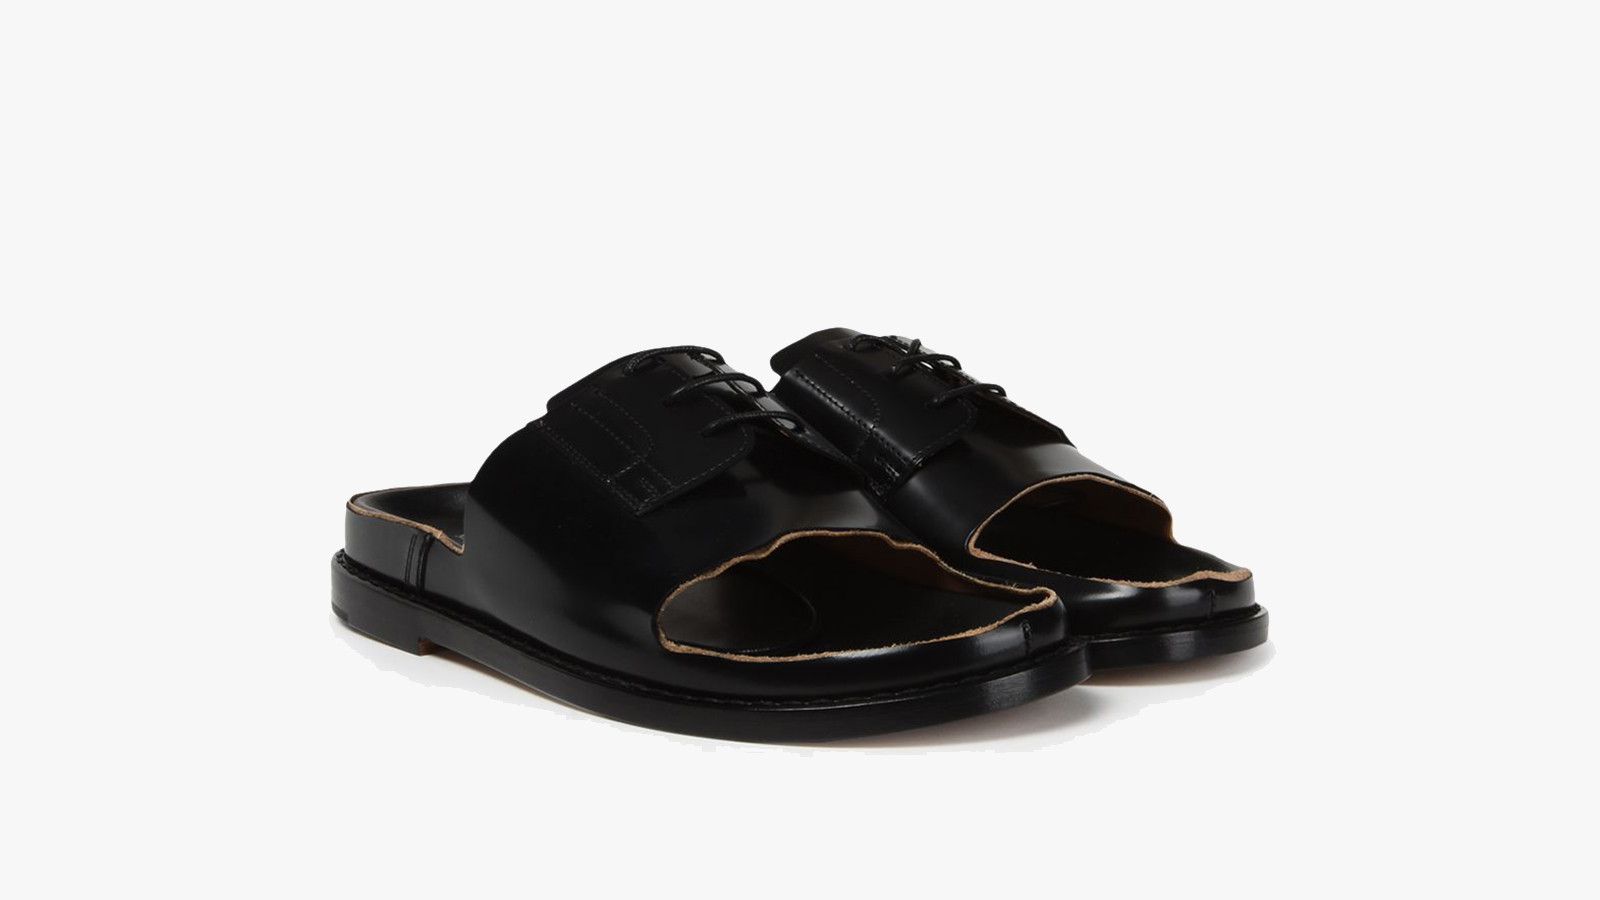 Maison Margiela Cut-Out Men's Slides